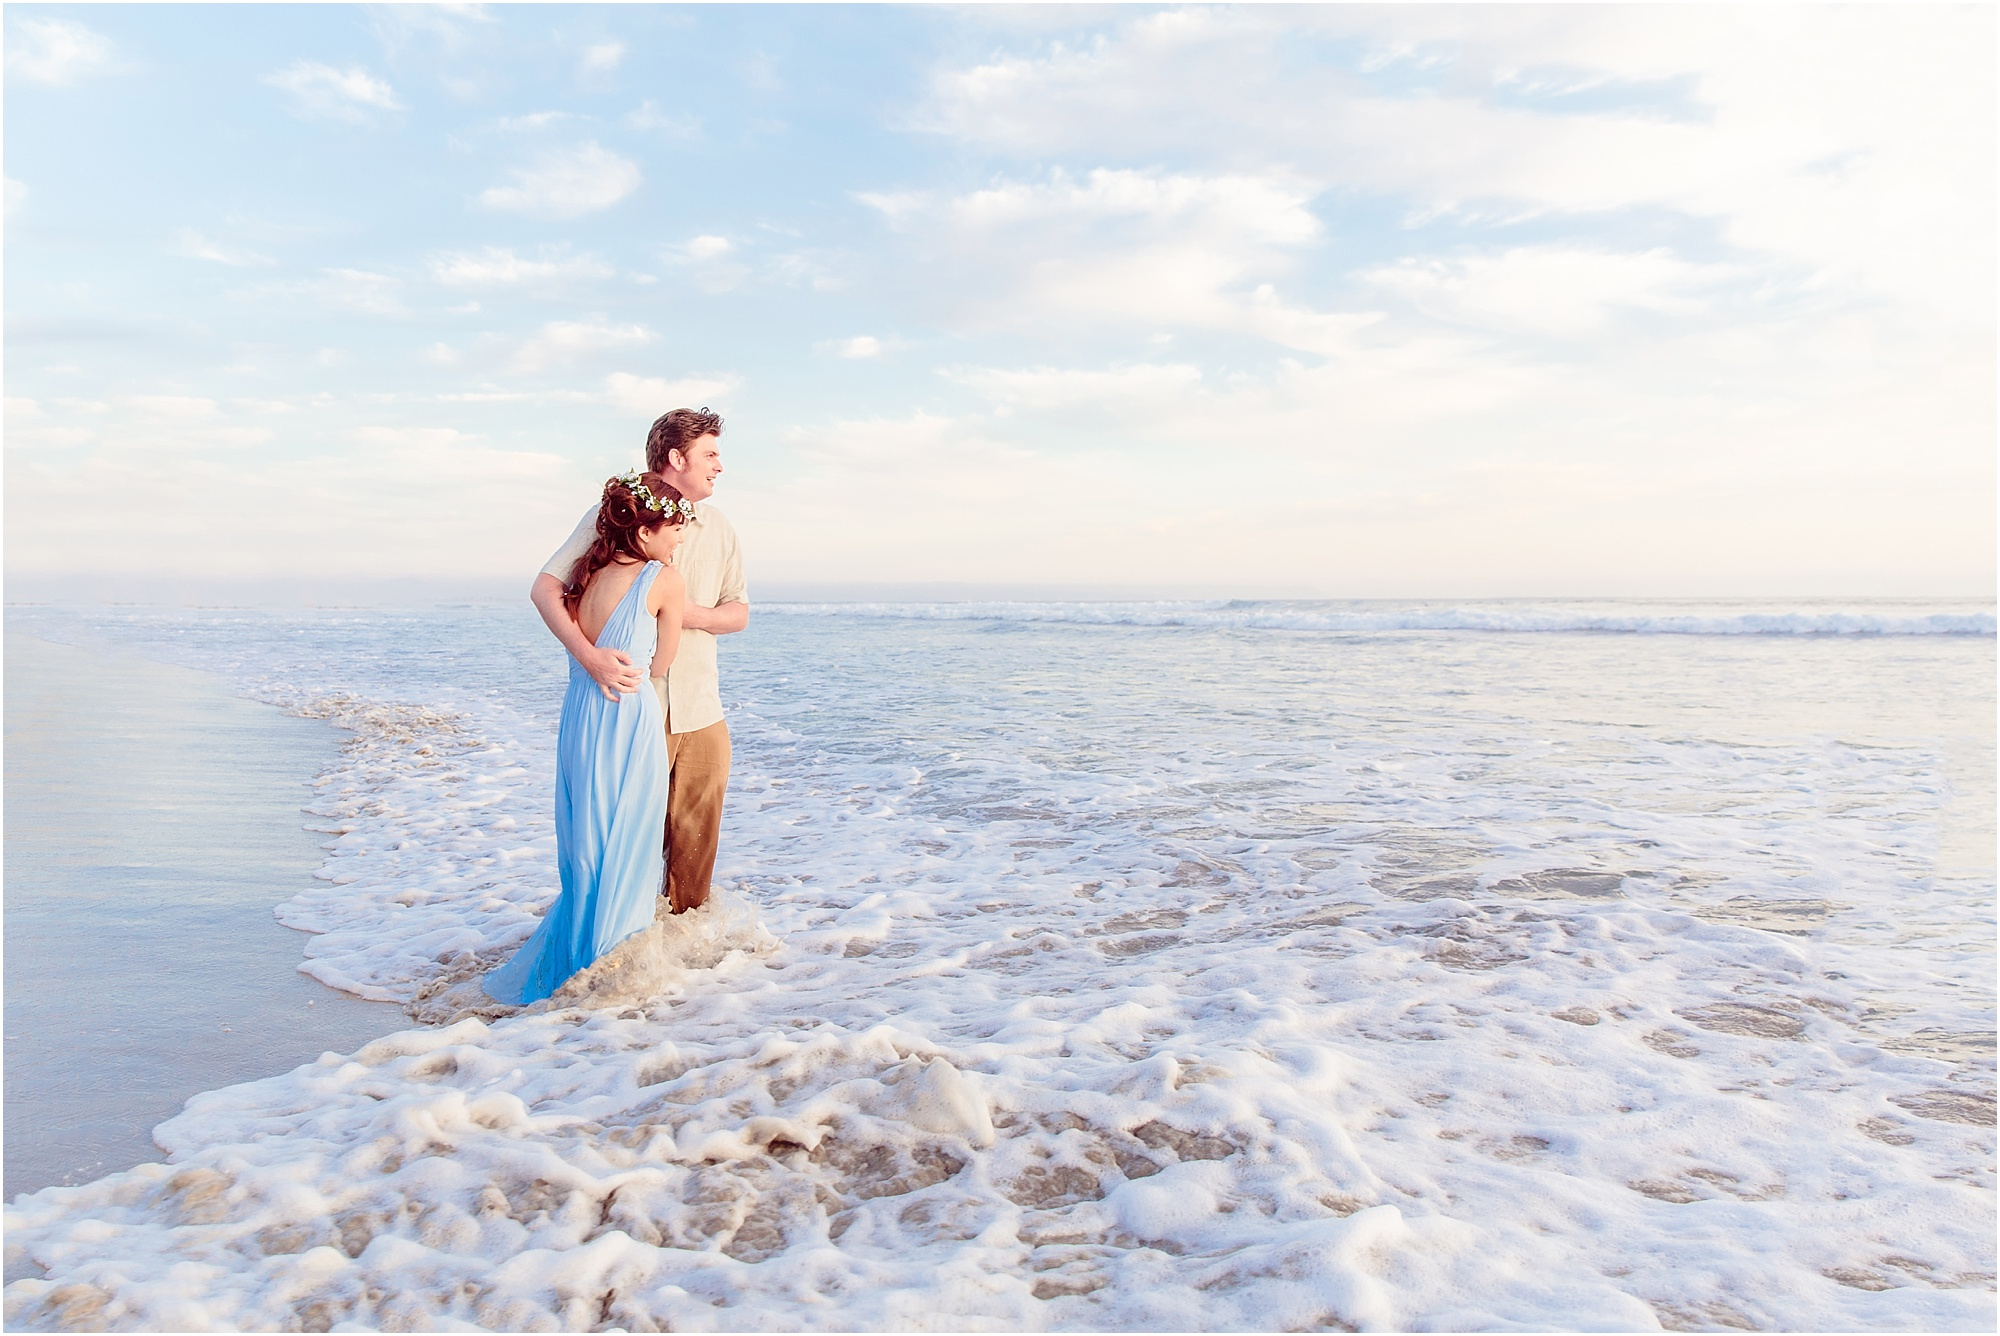 Engagement Photography San Diego | San Diego Beach Photographer